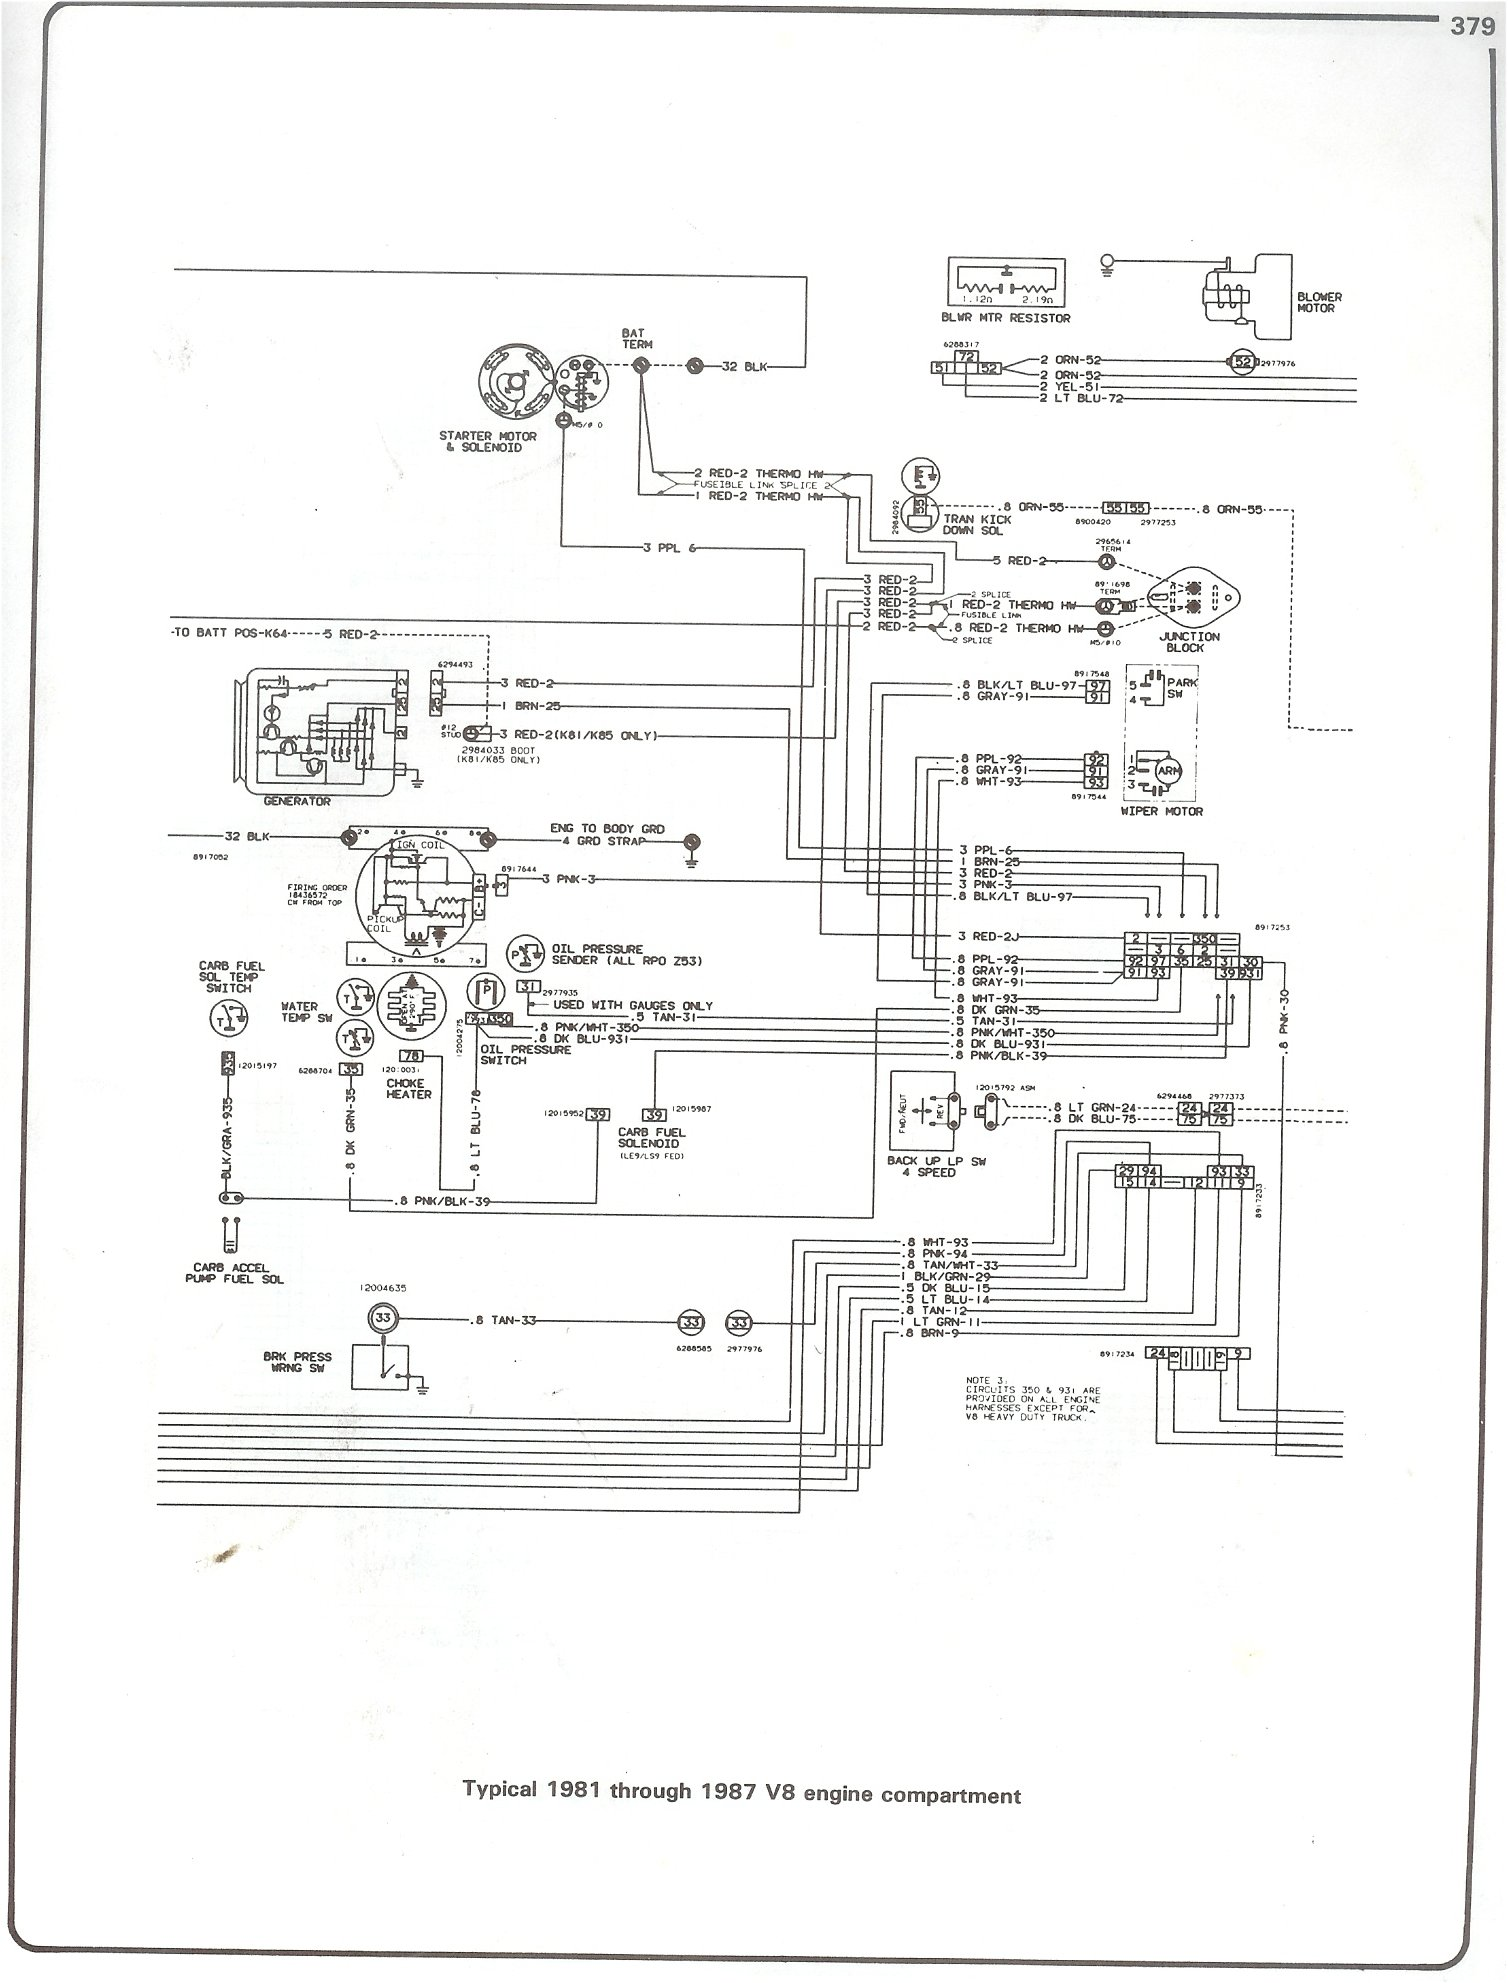 81 87_V8_engine chevy wiring diagrams chevy radio wiring \u2022 wiring diagrams j 65 Chevy Truck Wiring Diagram at creativeand.co